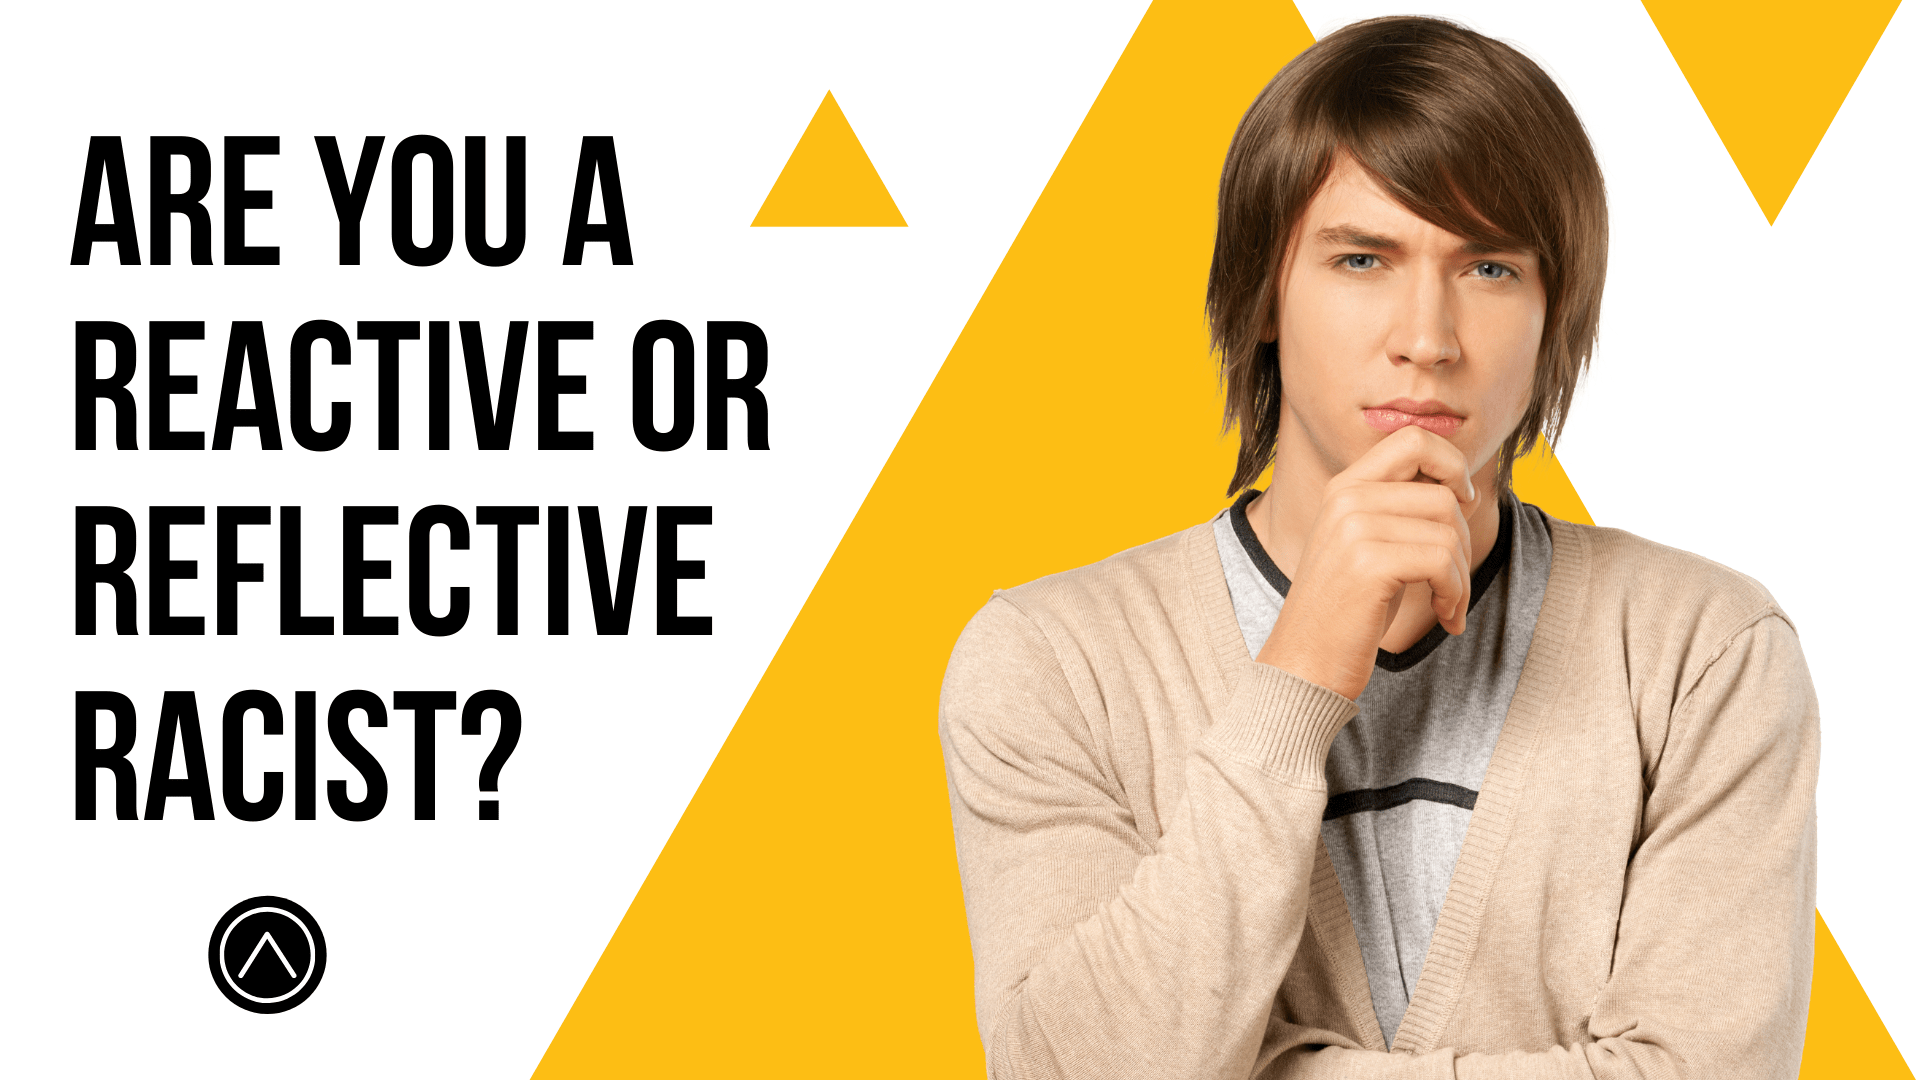 Are You a Reactive or Reflective Racist